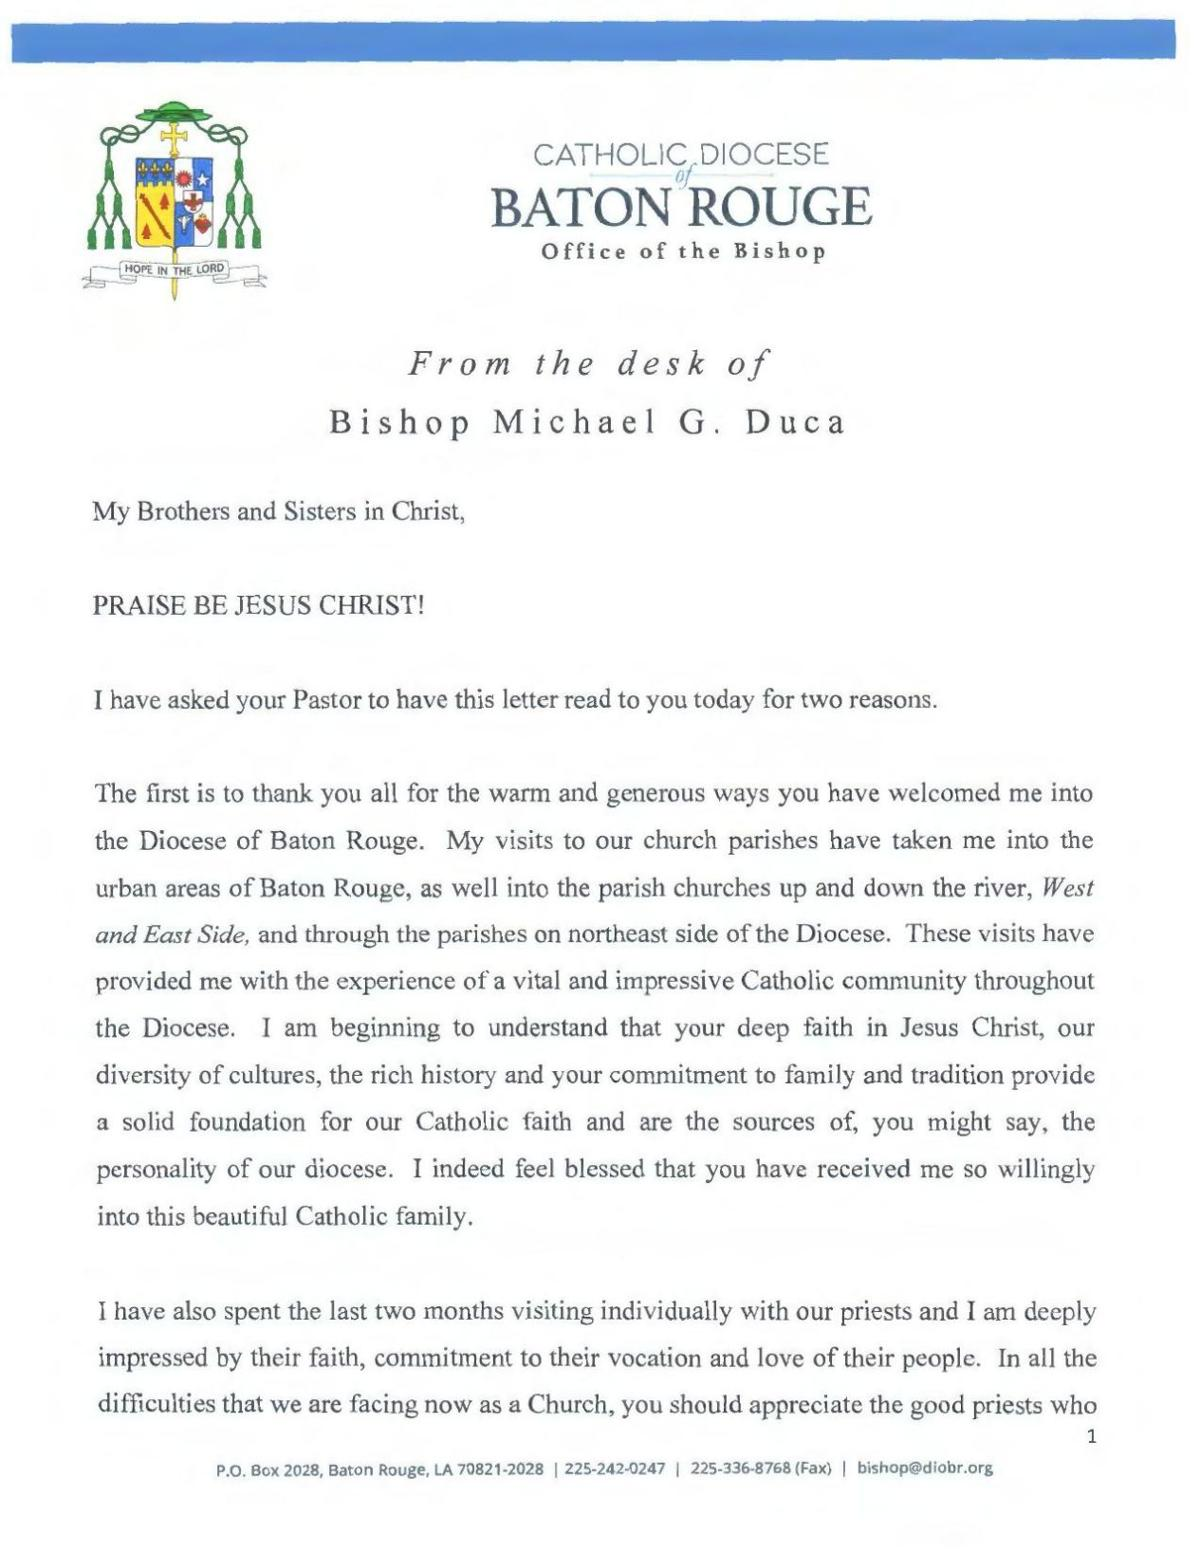 Bishop Duca's letter to the Diocese